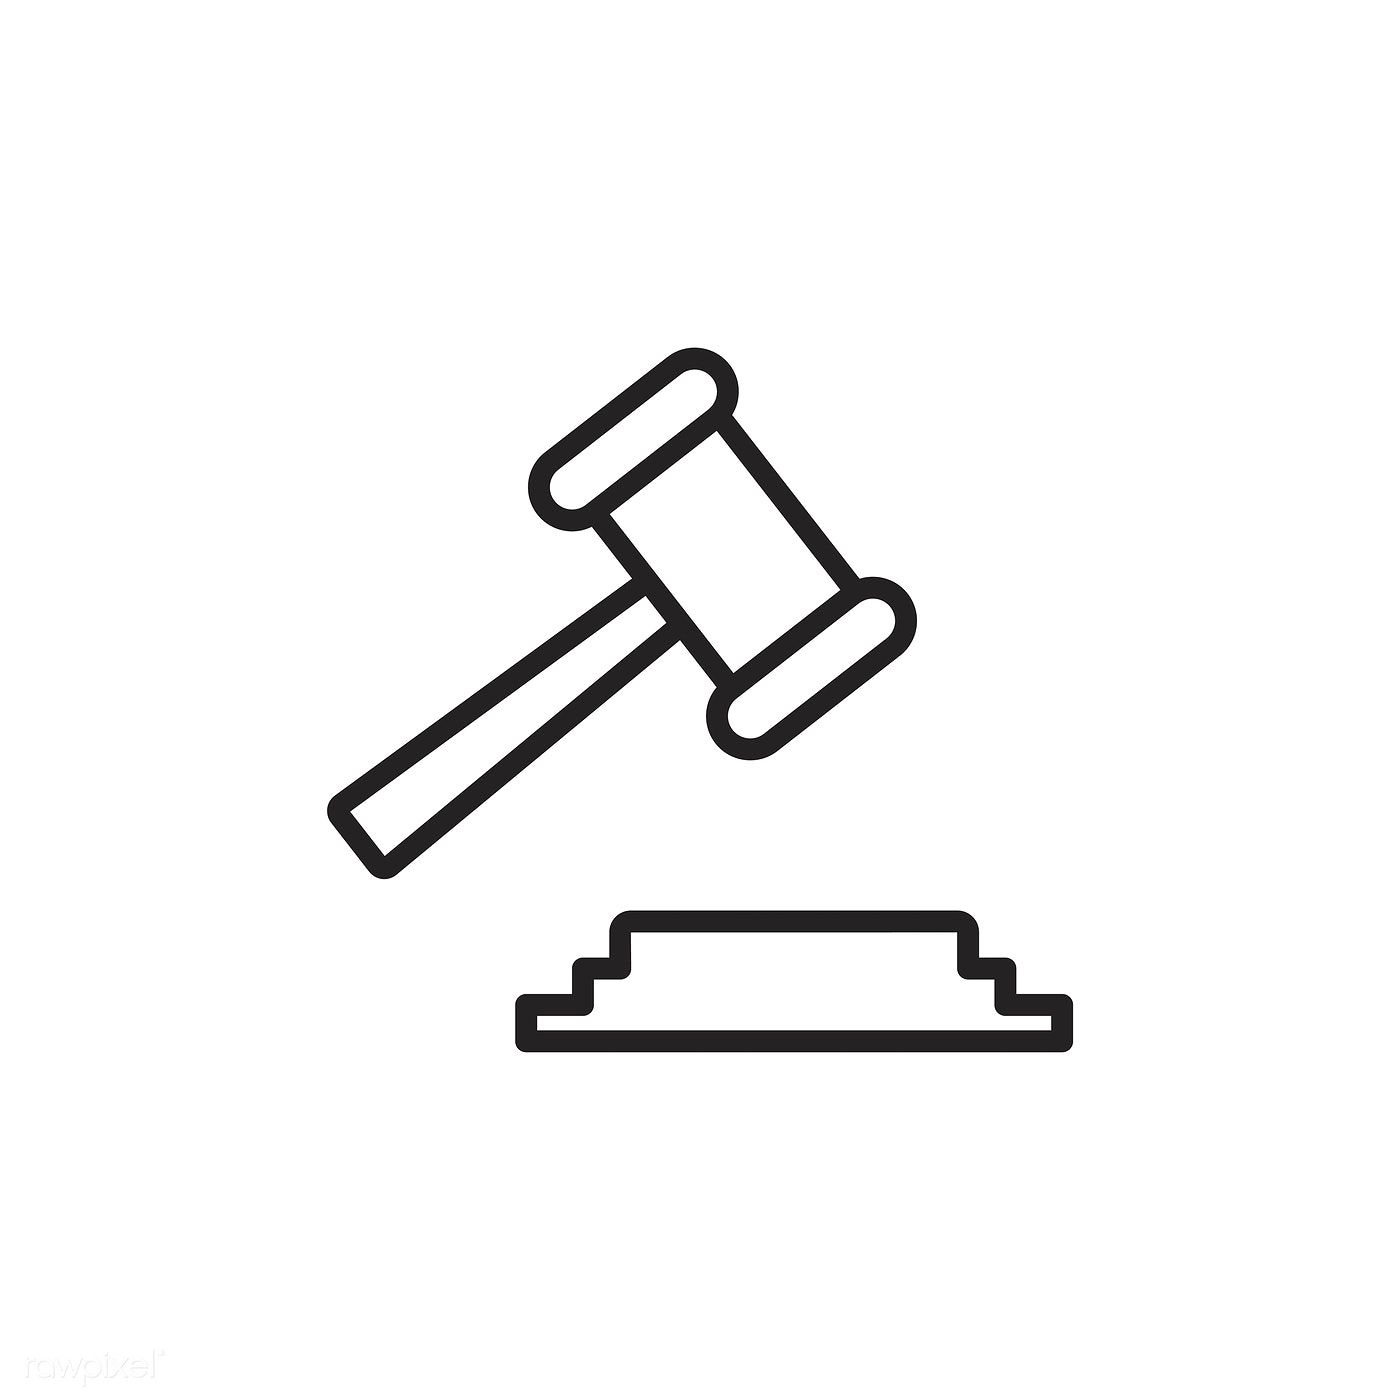 Gavel Icon Vector Free Image By Rawpixel Com In 2021 Vector Free Vector Icon